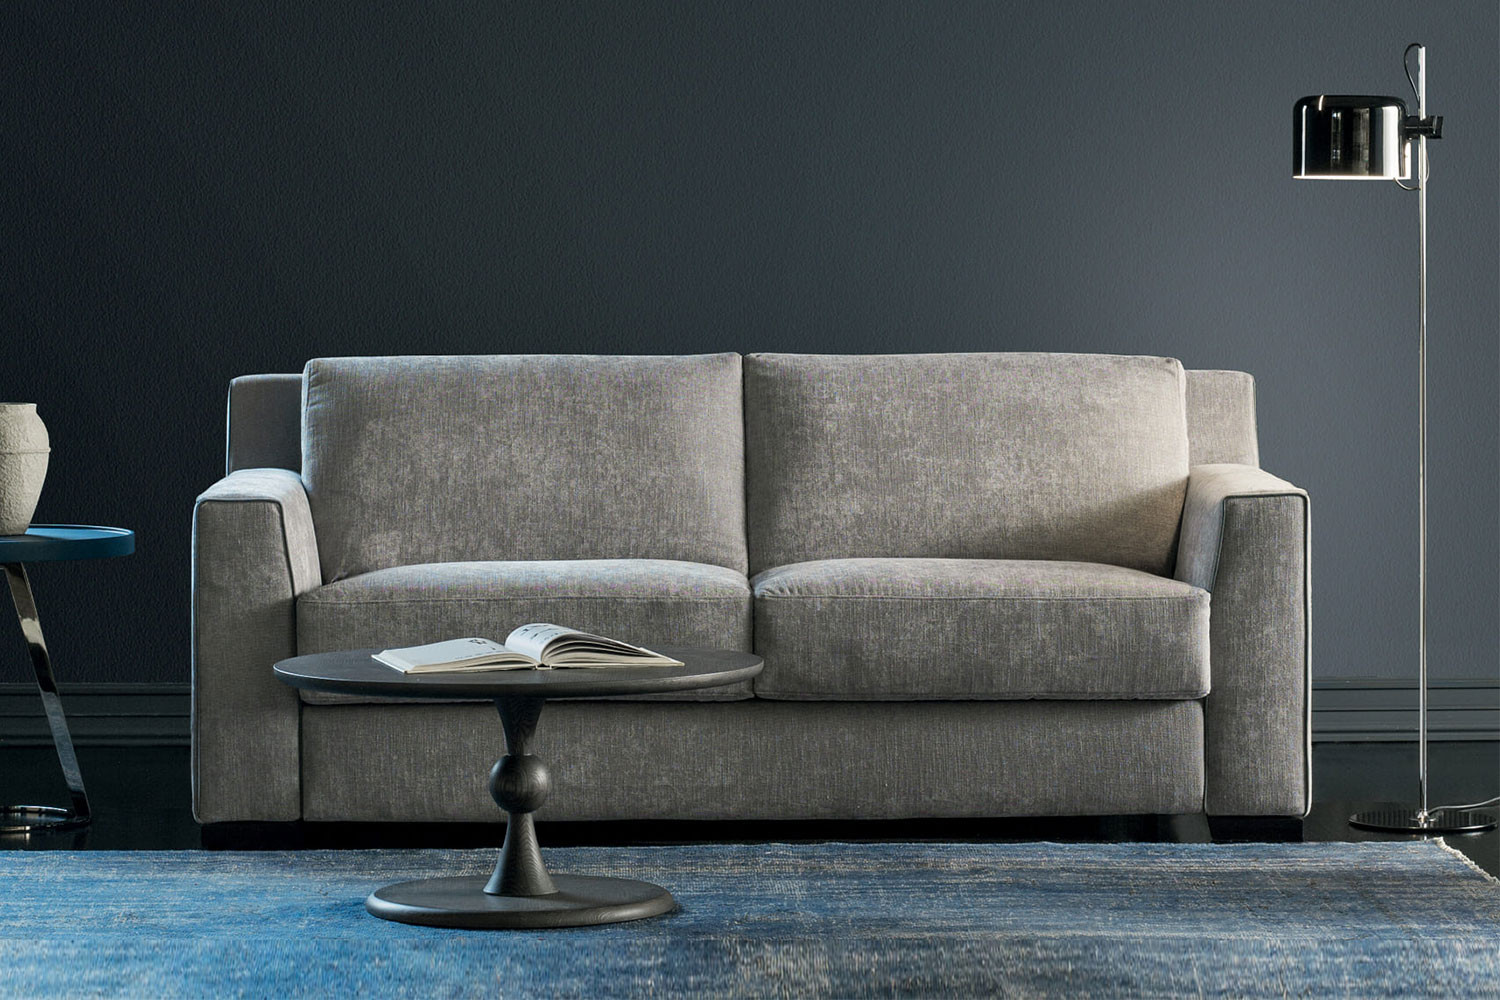 2-3 seater pocket sprung sofa bed with a Simmons mattress 18 cm thick